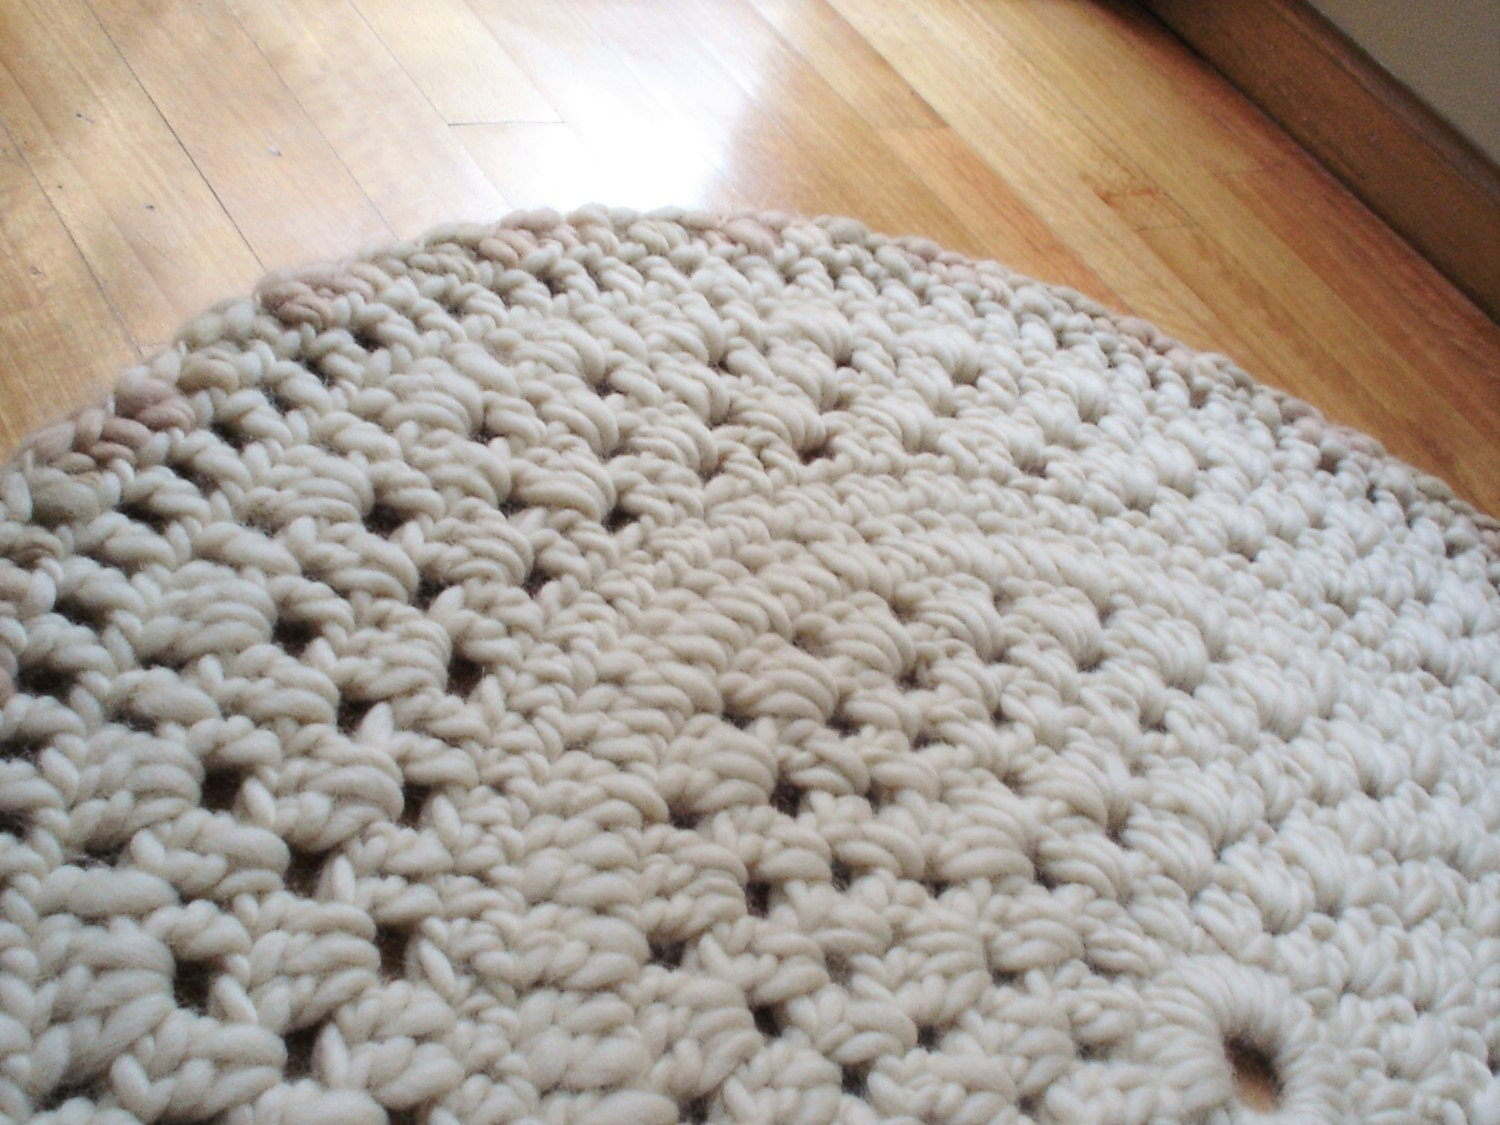 WOOL RUG Area Rug Crochet Rug Round Knitted Rug Chunky Wool Knit Rug  Bedroom Rug Bedside